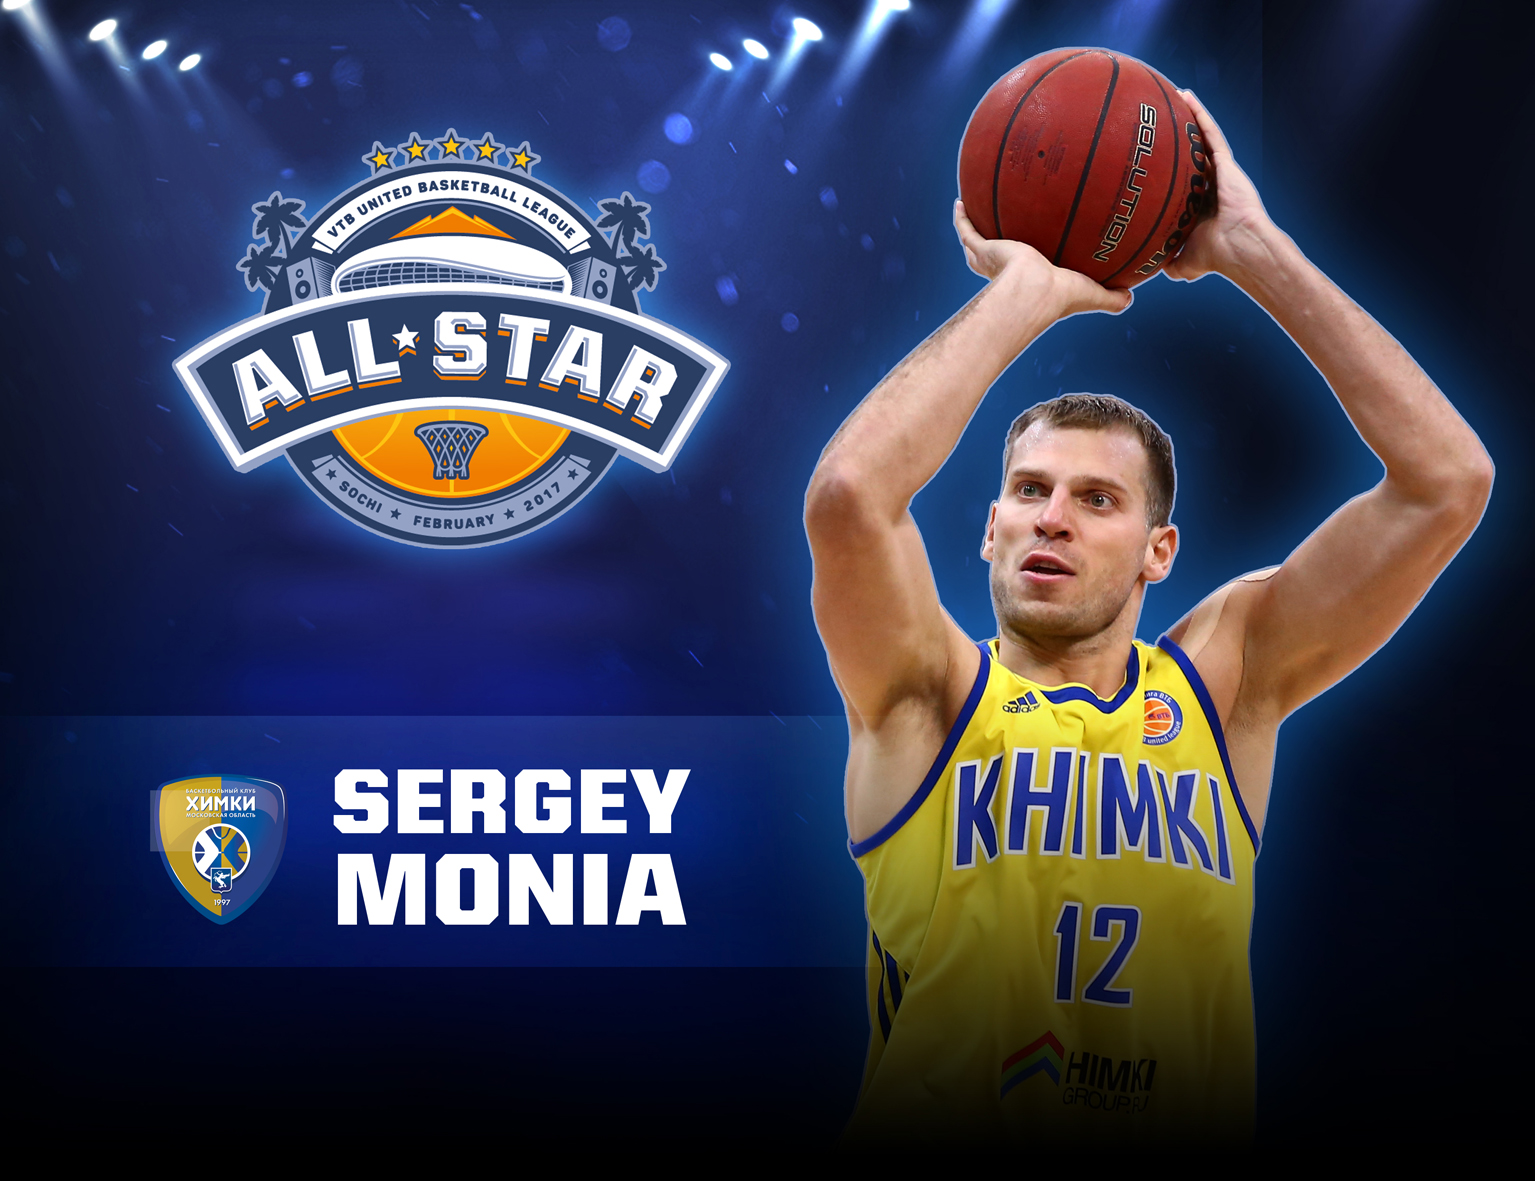 All-Star Profile: Sergey Monia